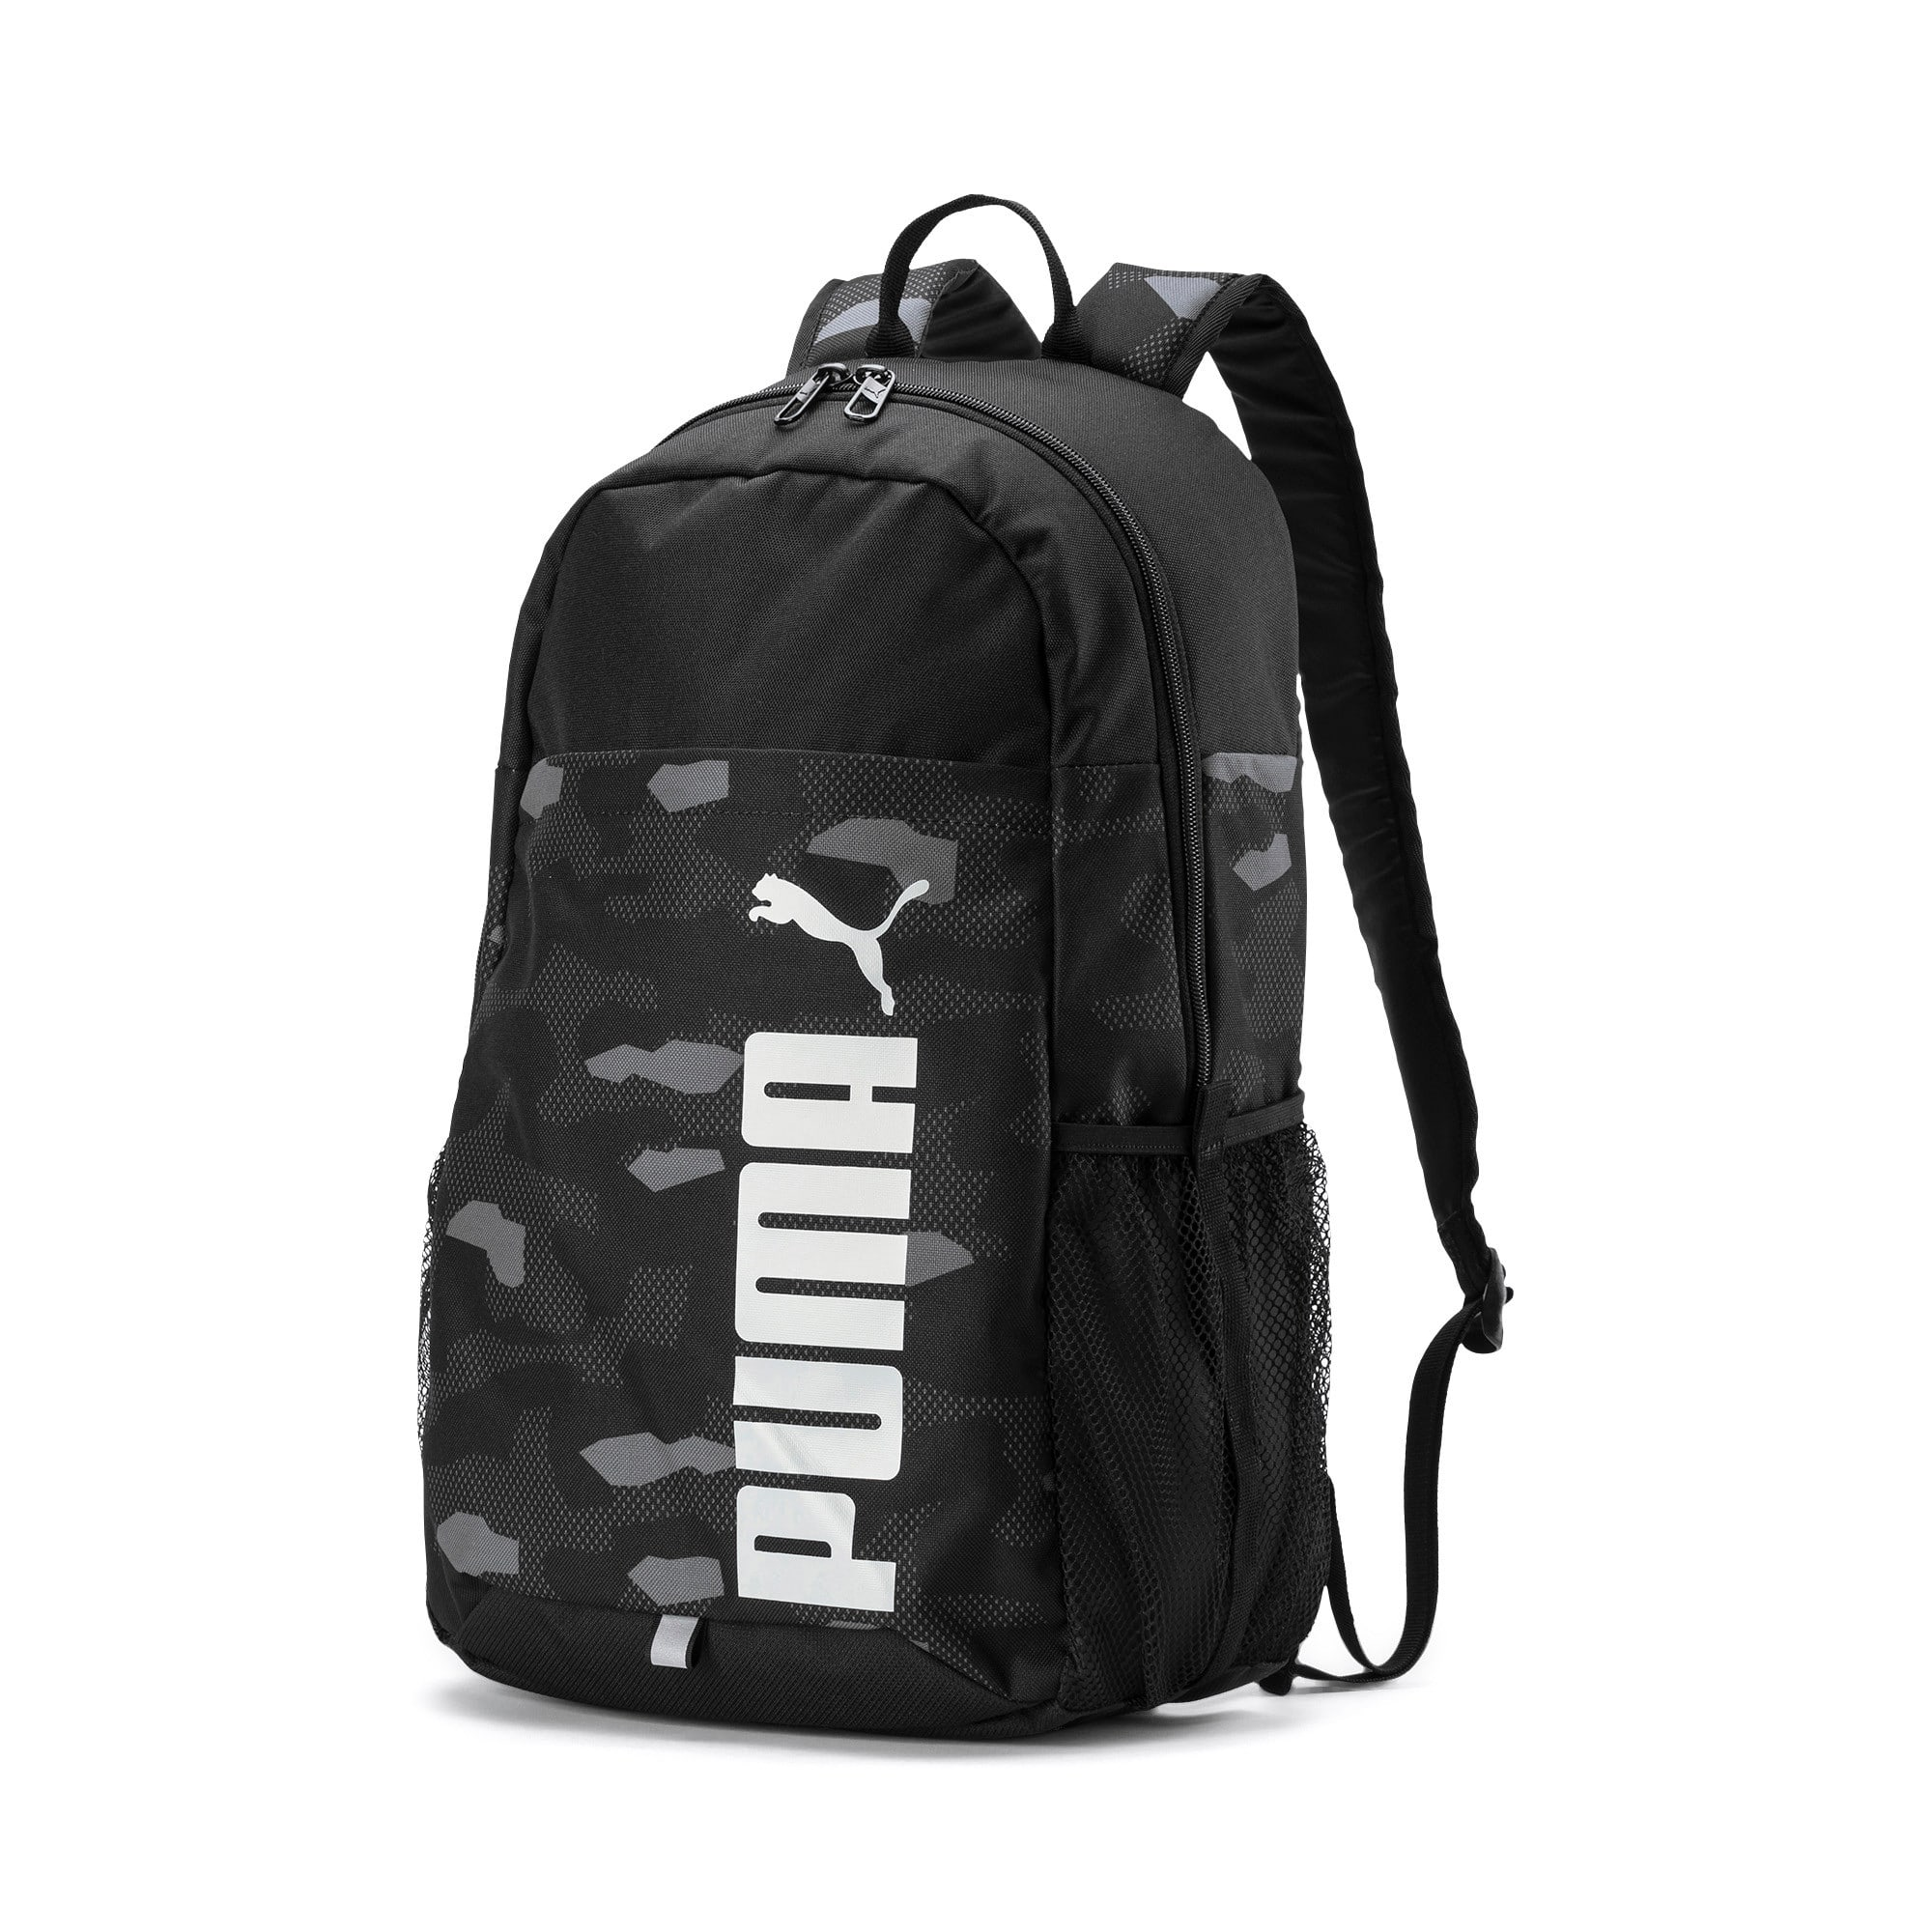 Thumbnail 1 of PUMA Style Backpack, Puma Black-Camo AOP, medium